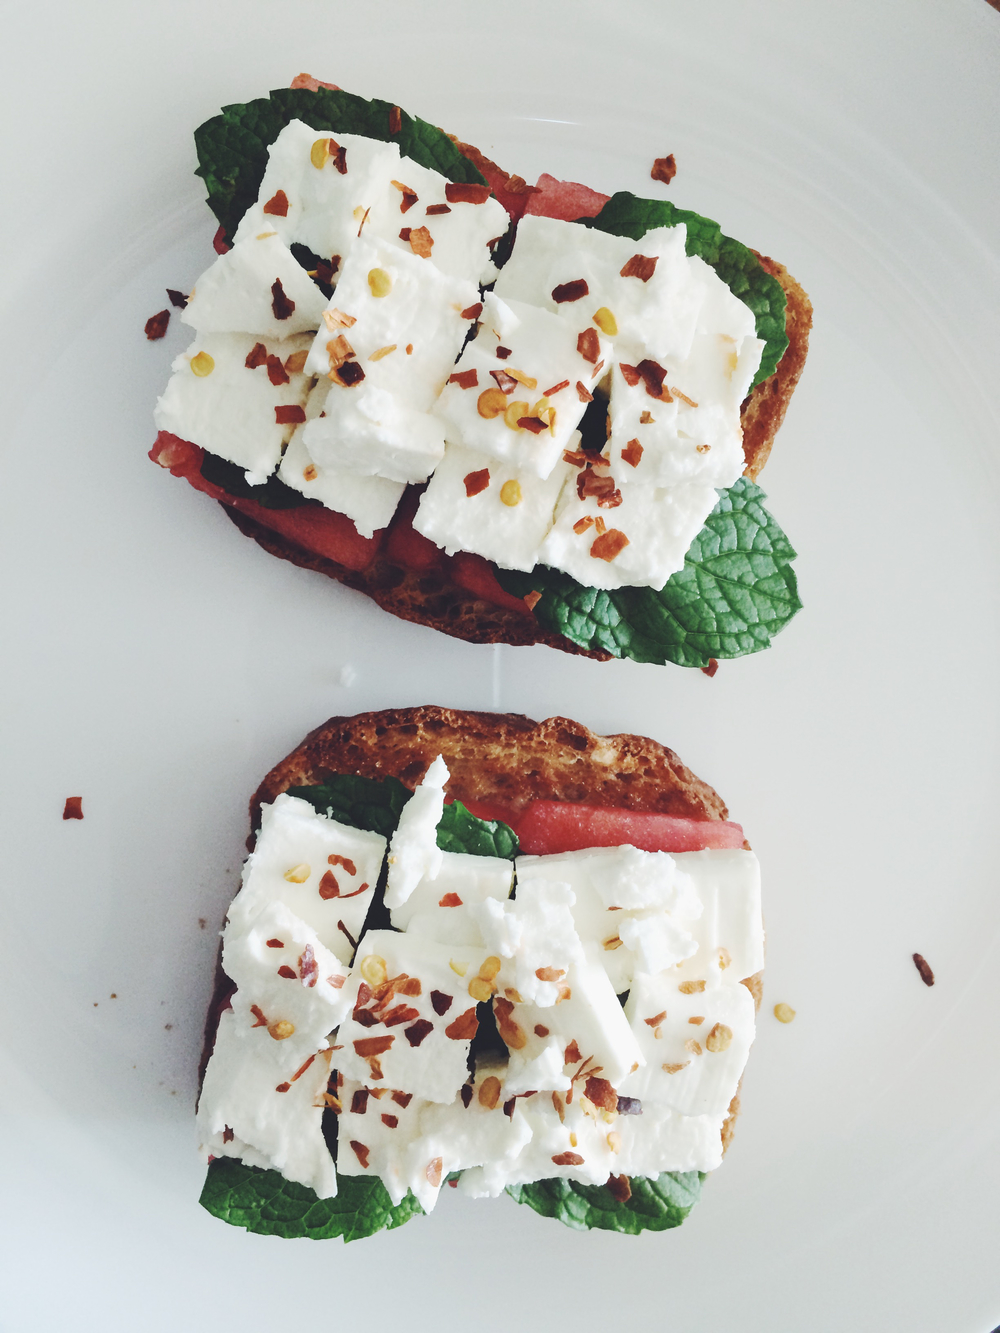 WATERMELON AND FETA TOAST